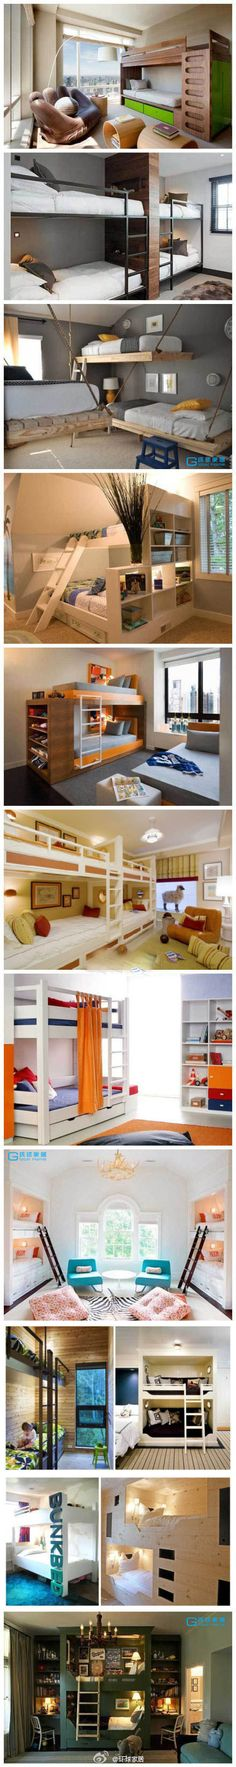 Who said kids rooms with bunk beds had to be boring?